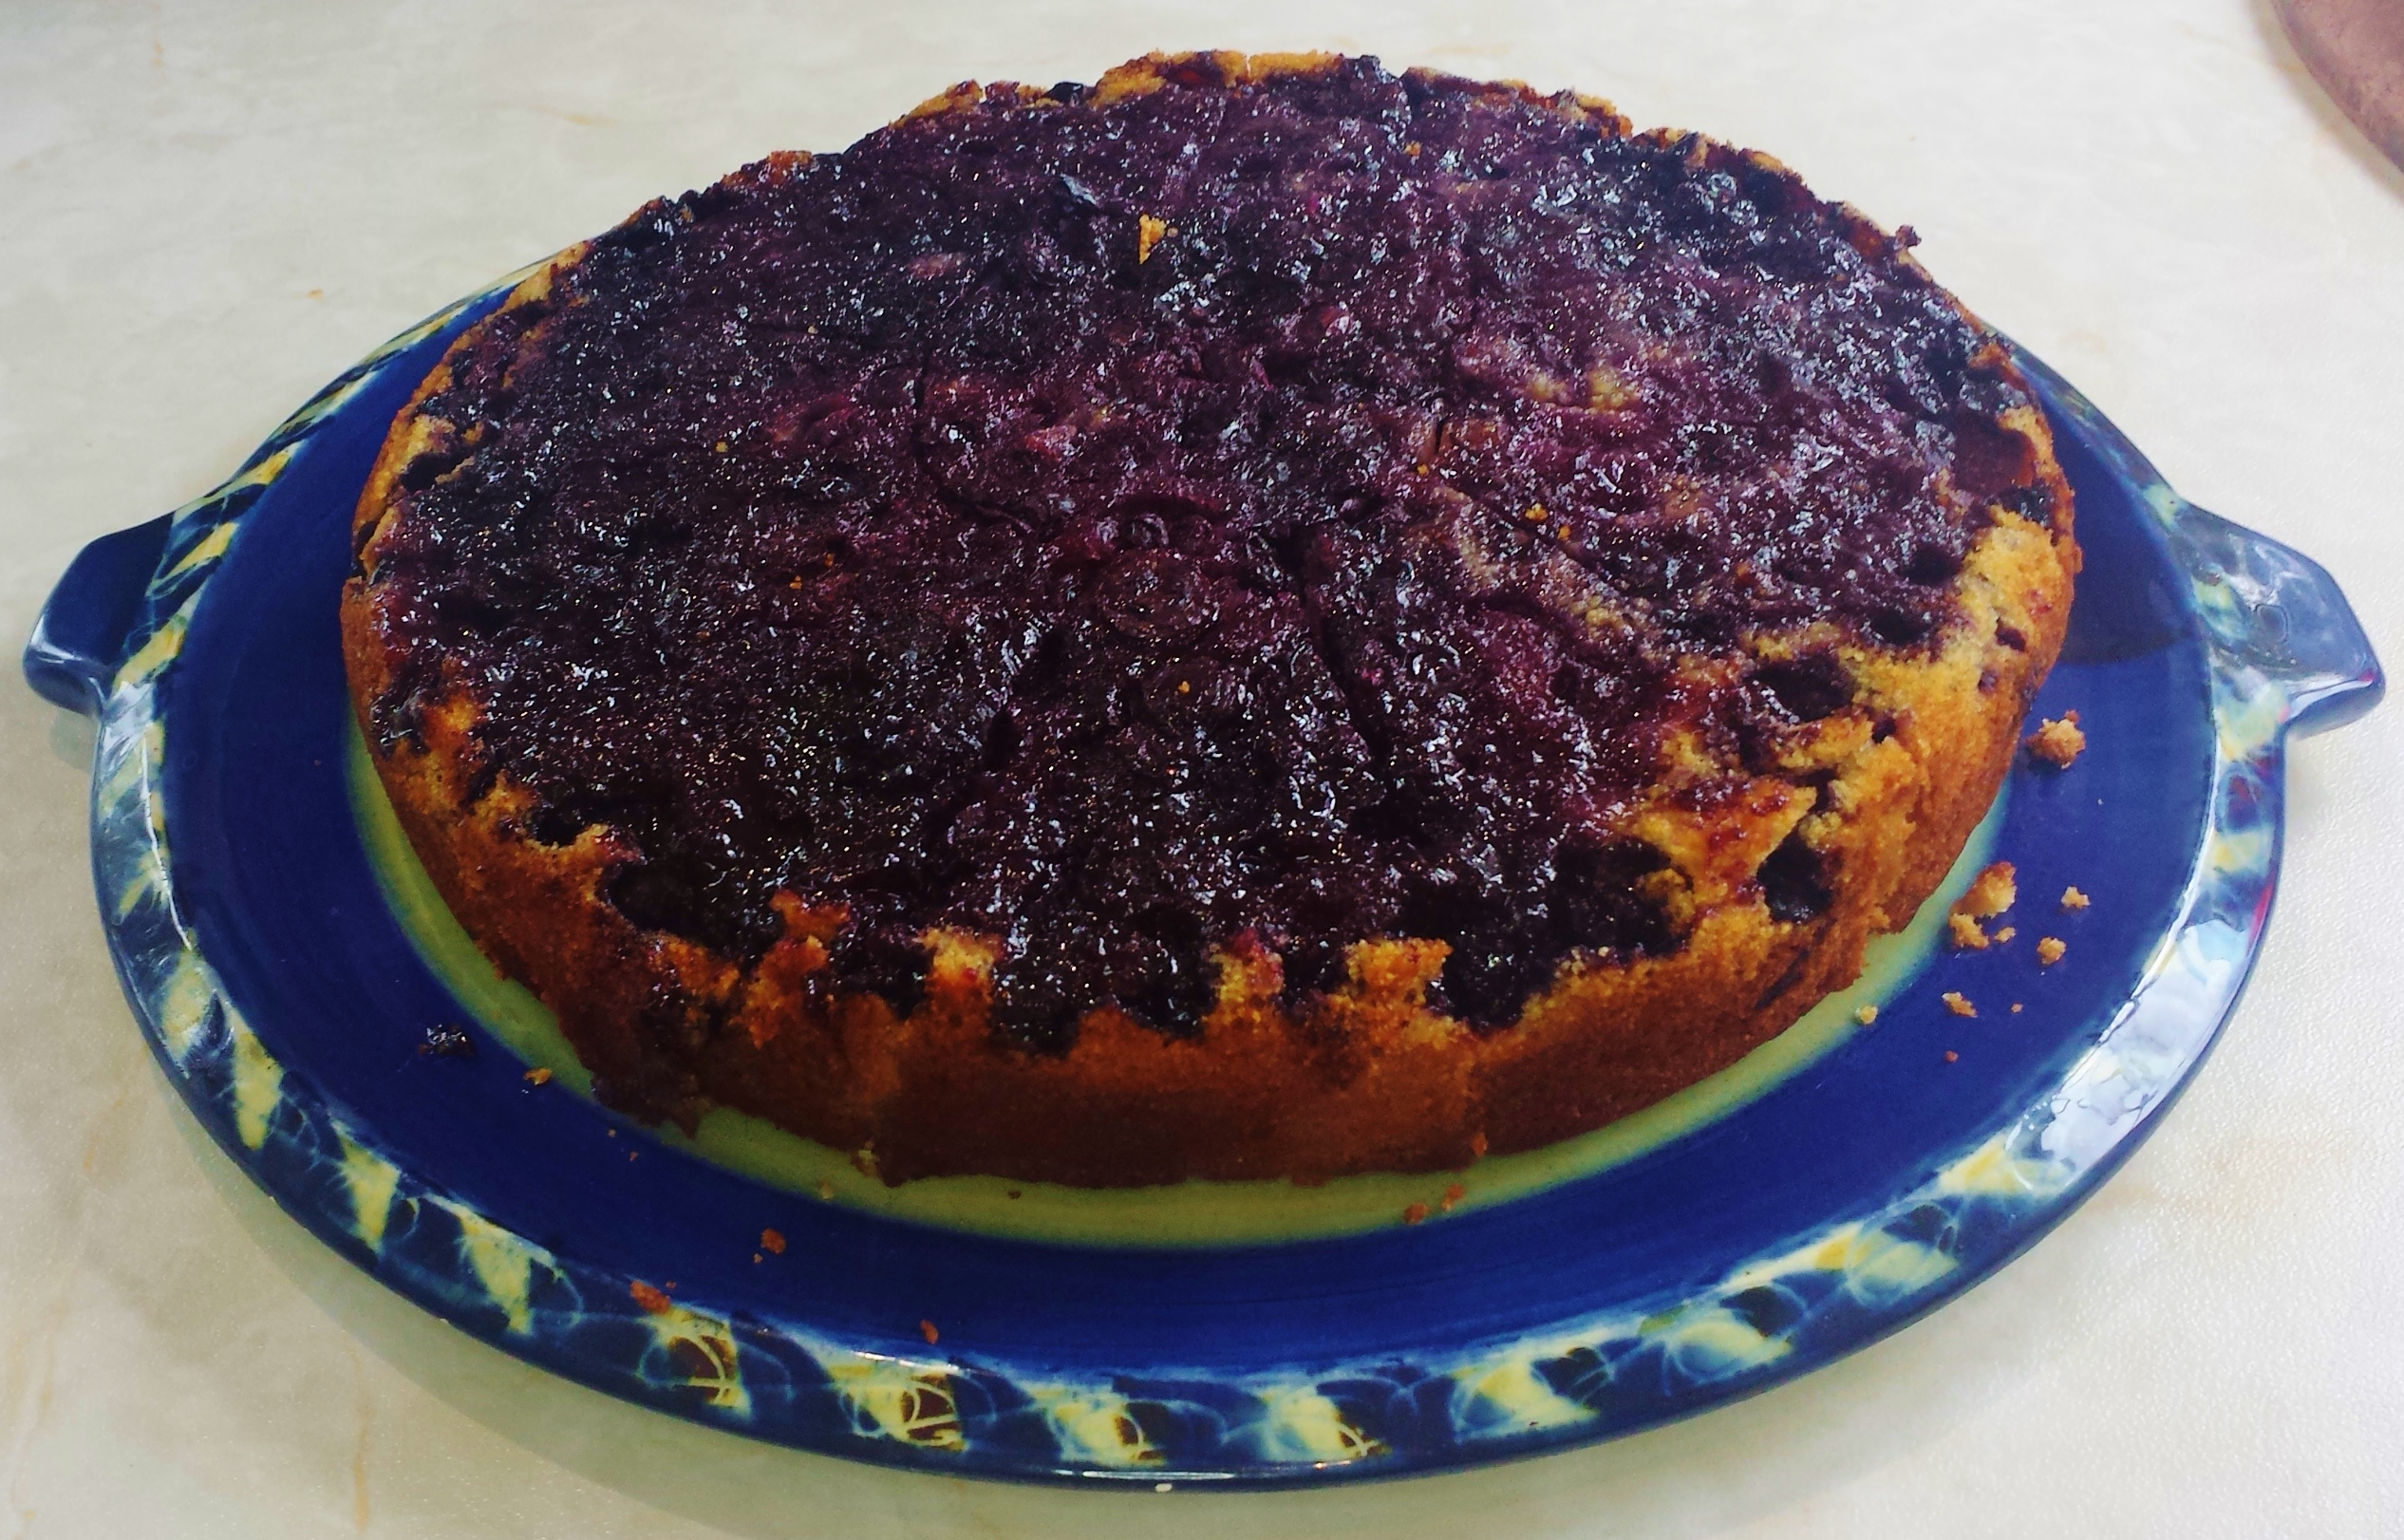 Blueberry Polenta Upside Down Cake